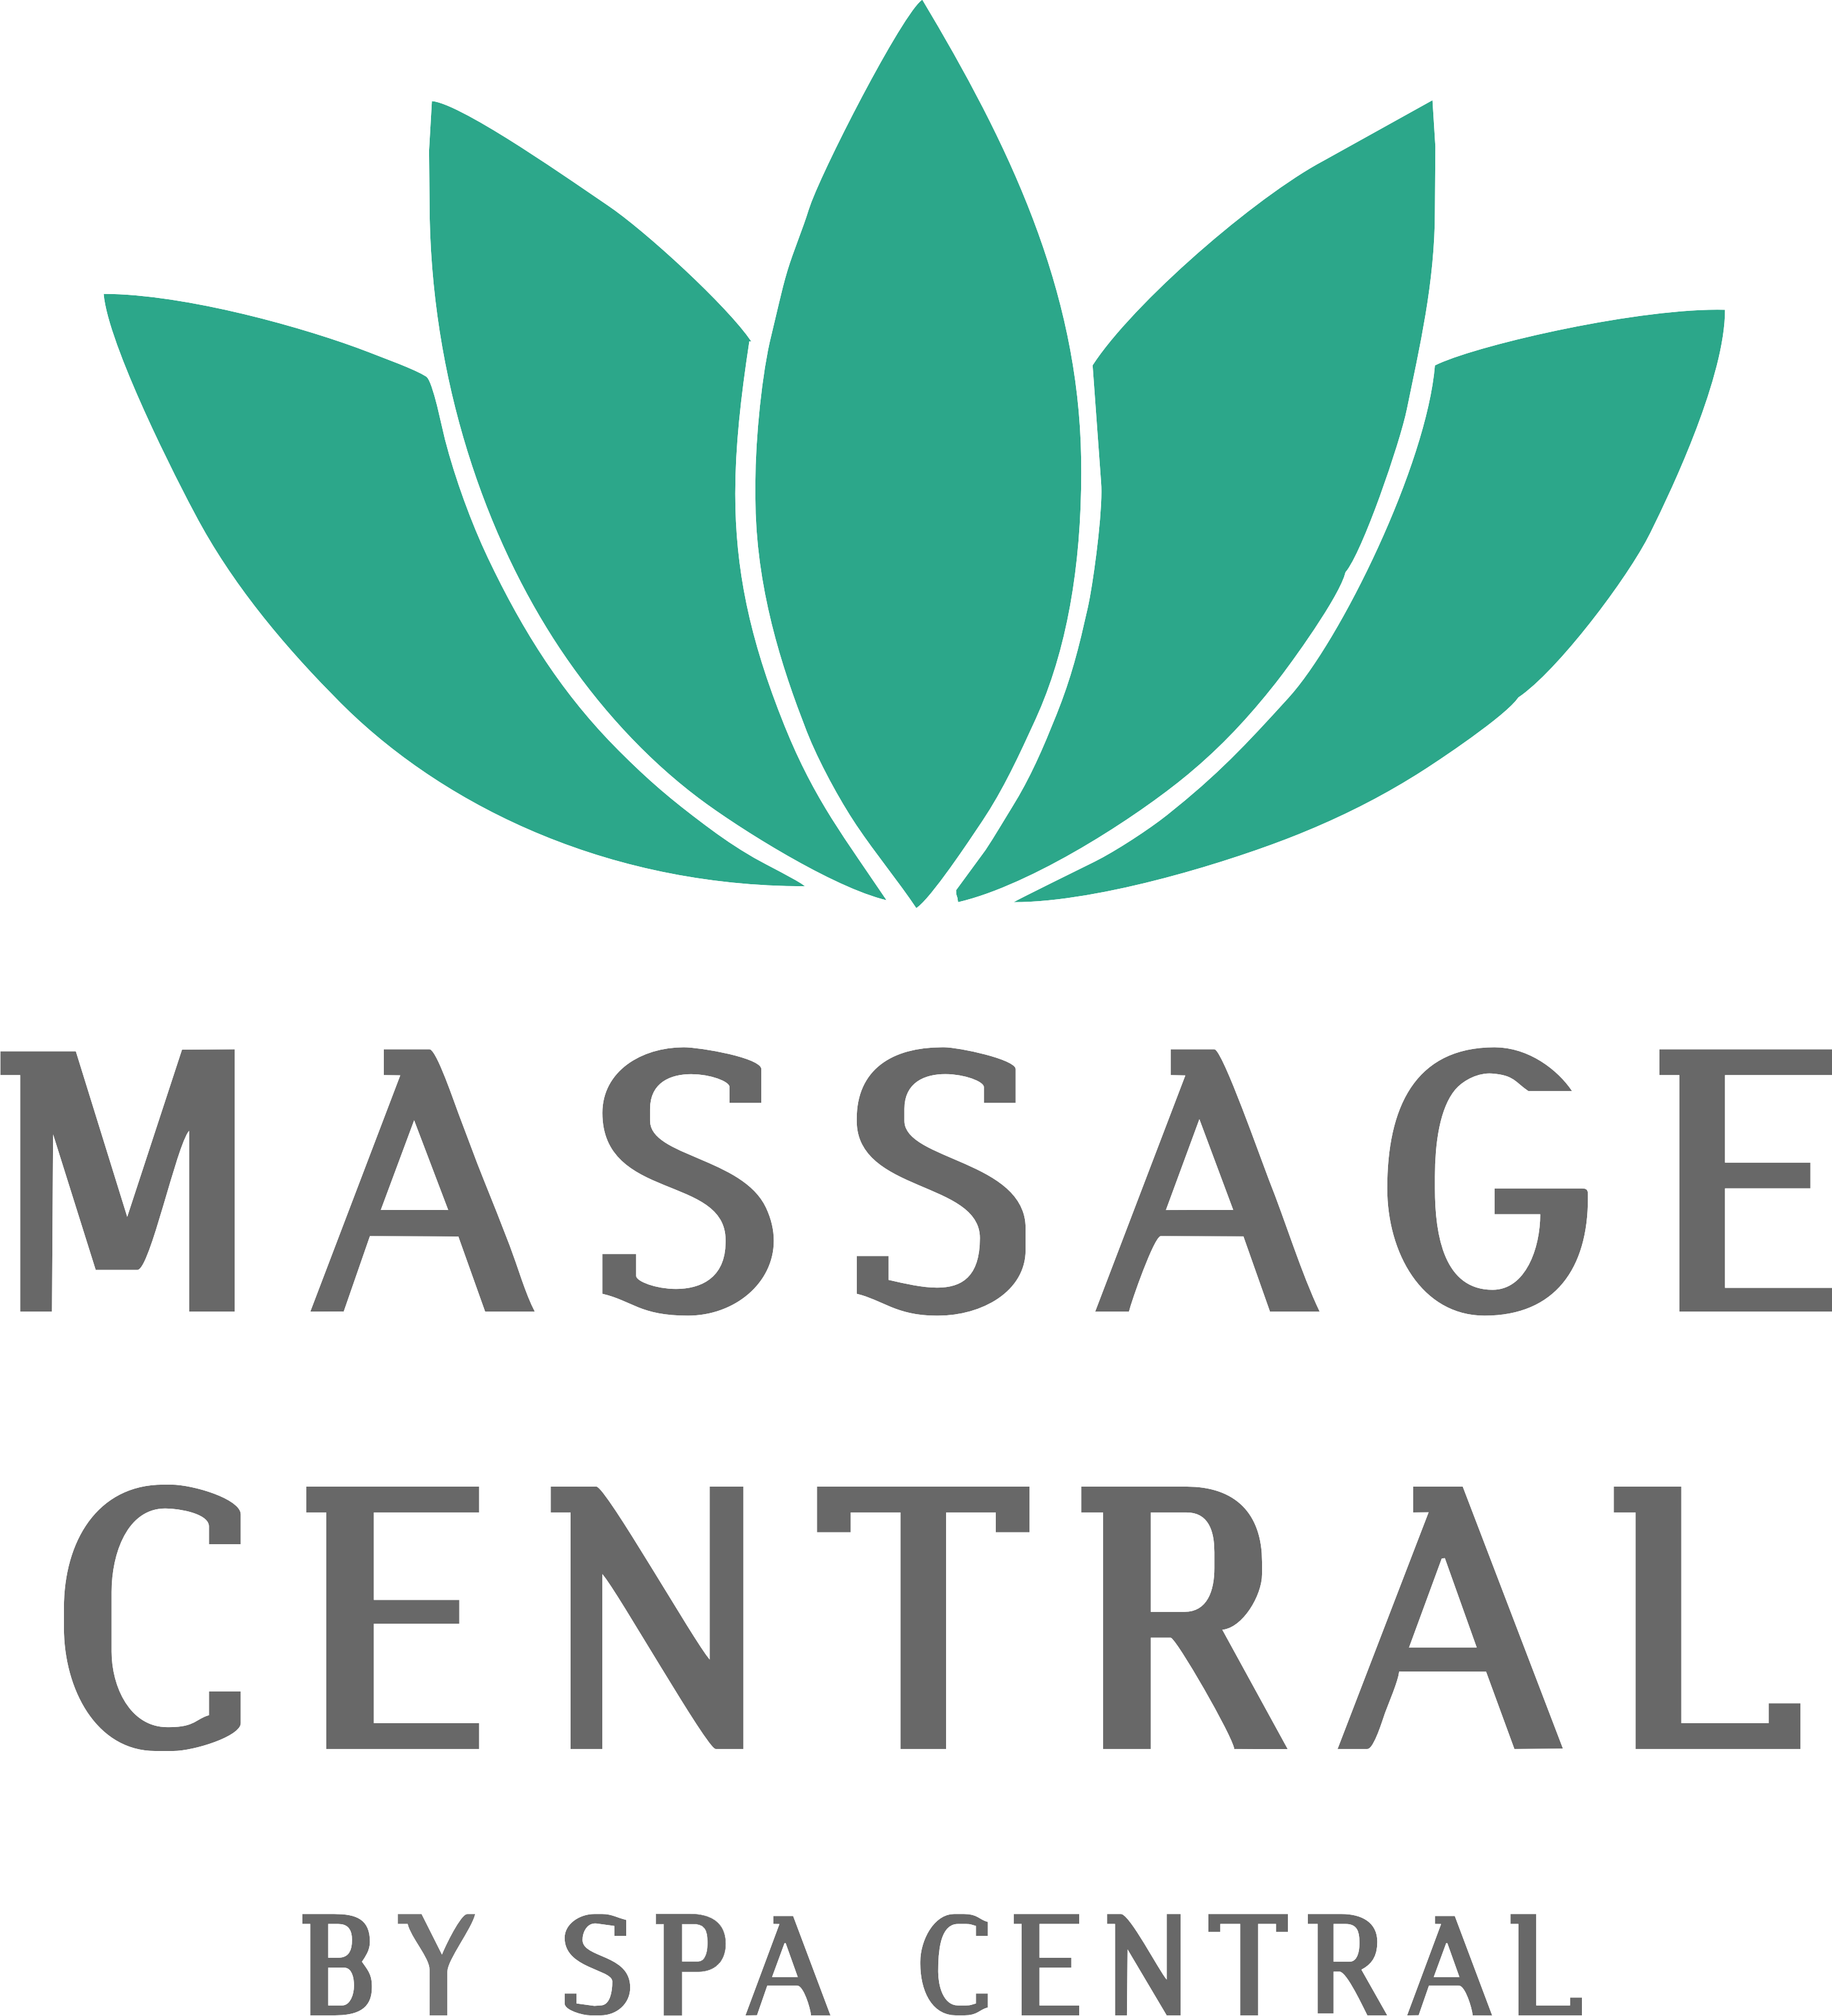 Massage Central Batam by Spa Central